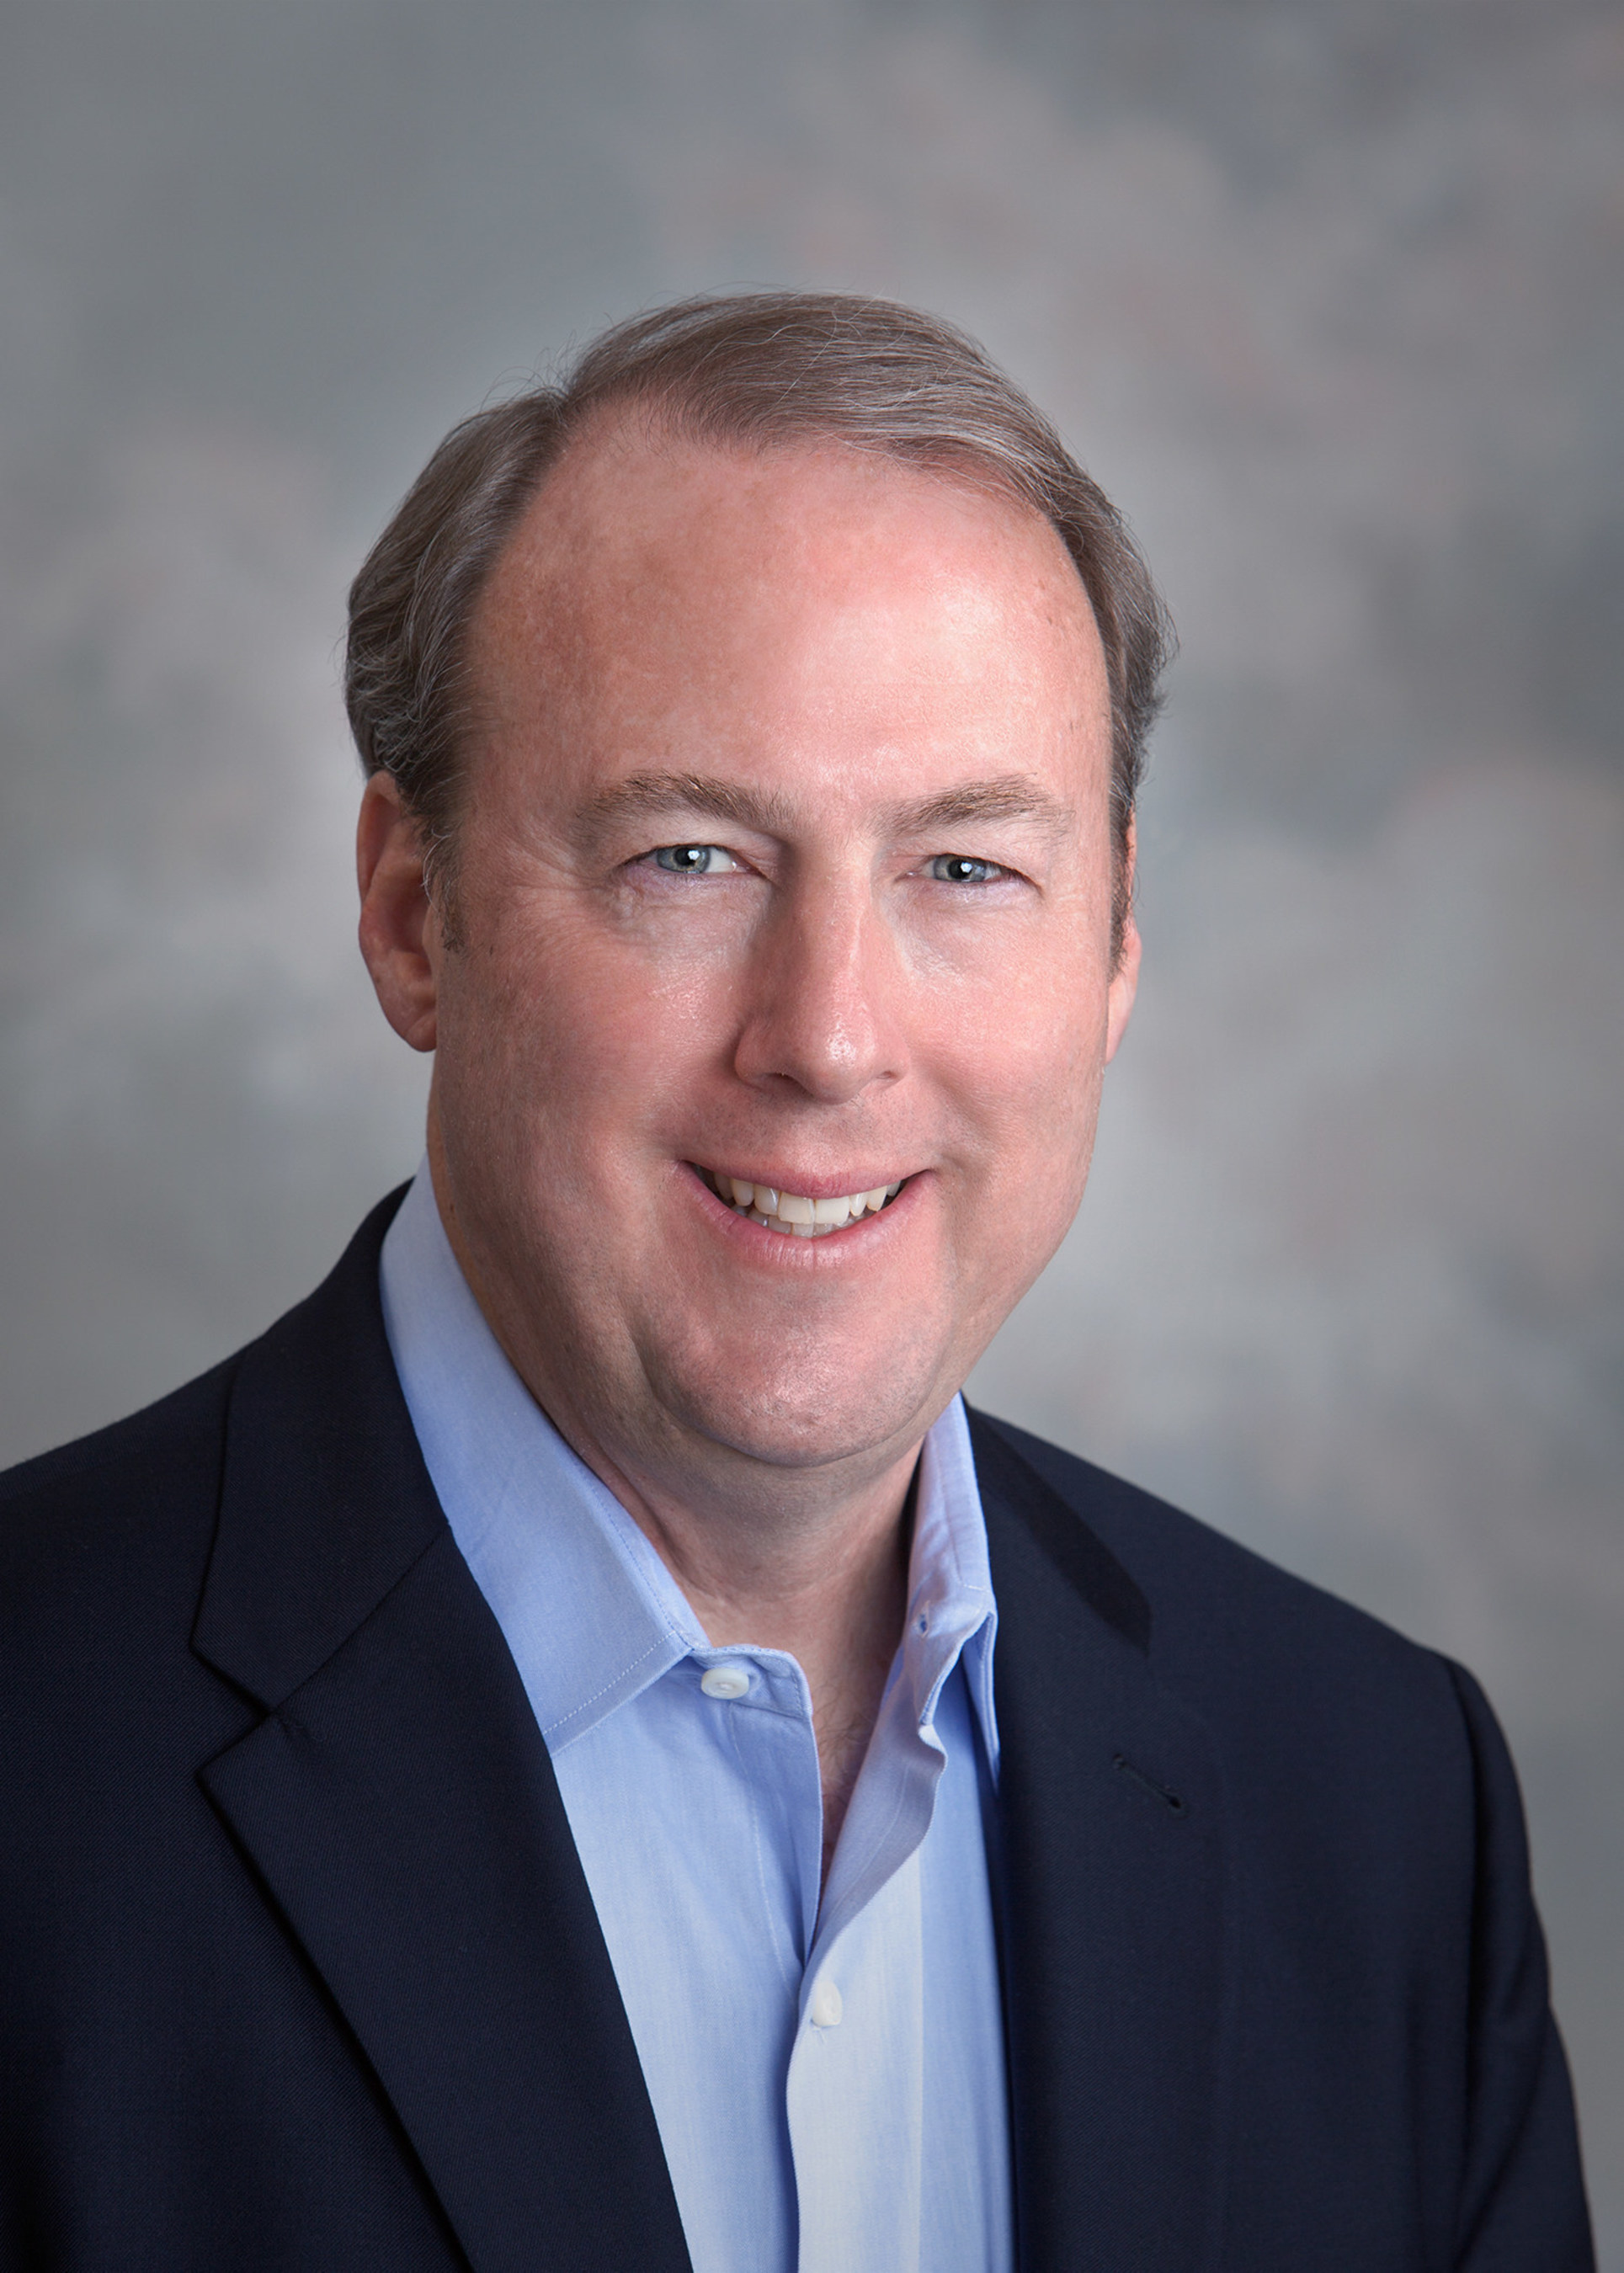 Todd Yancey, IRA Services Chief Strategy Officer